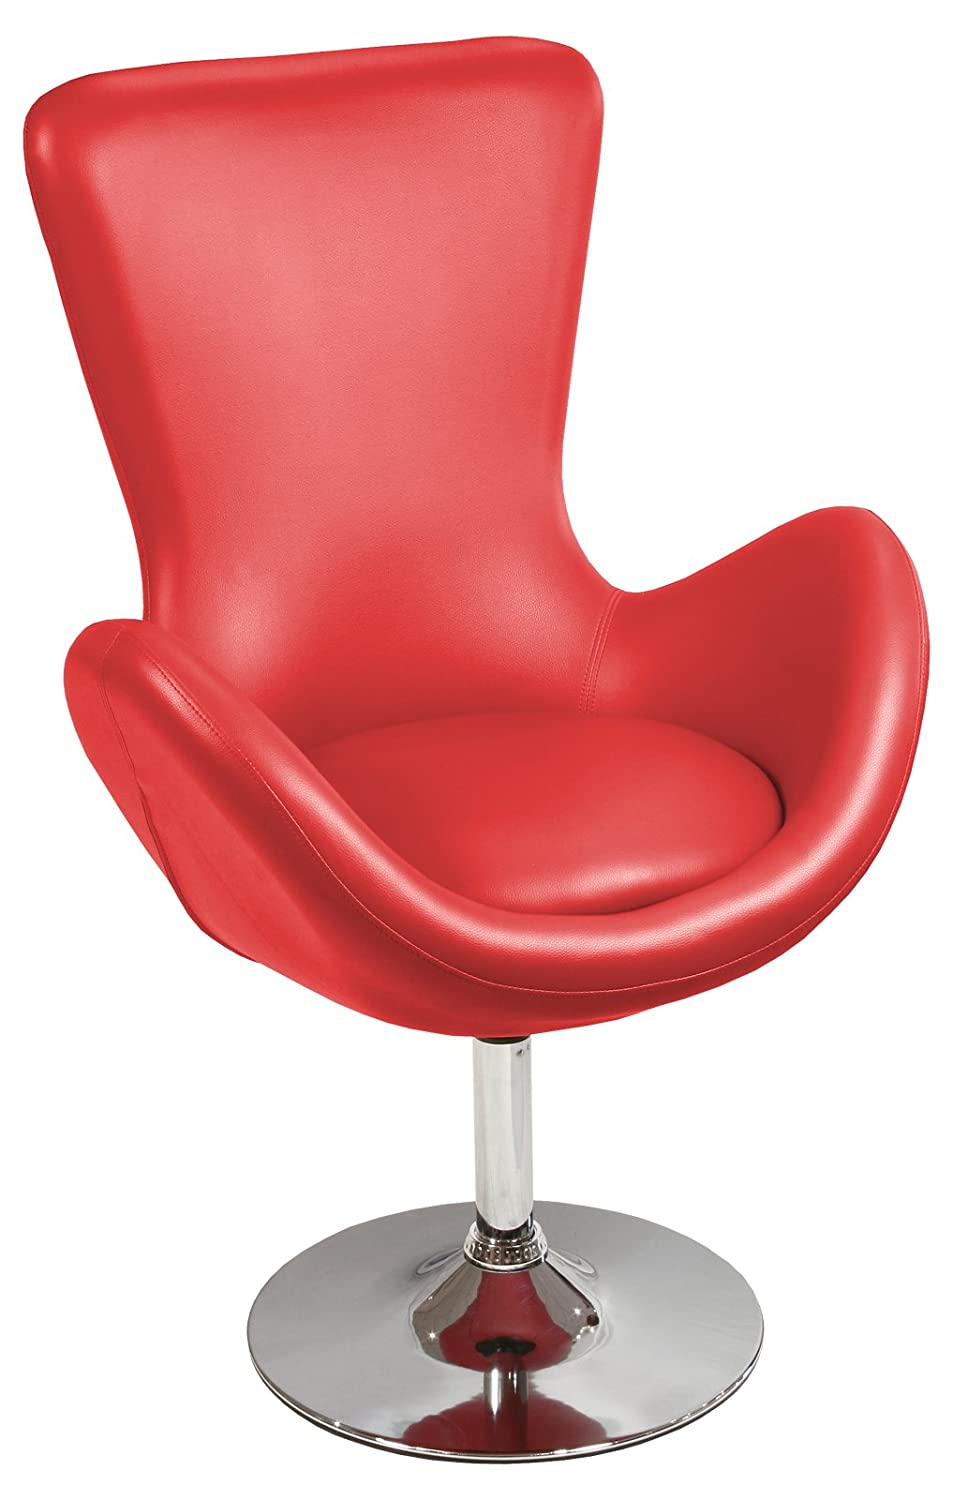 Febland Bucket Racing Chair, Faux Leather, Red FW464R